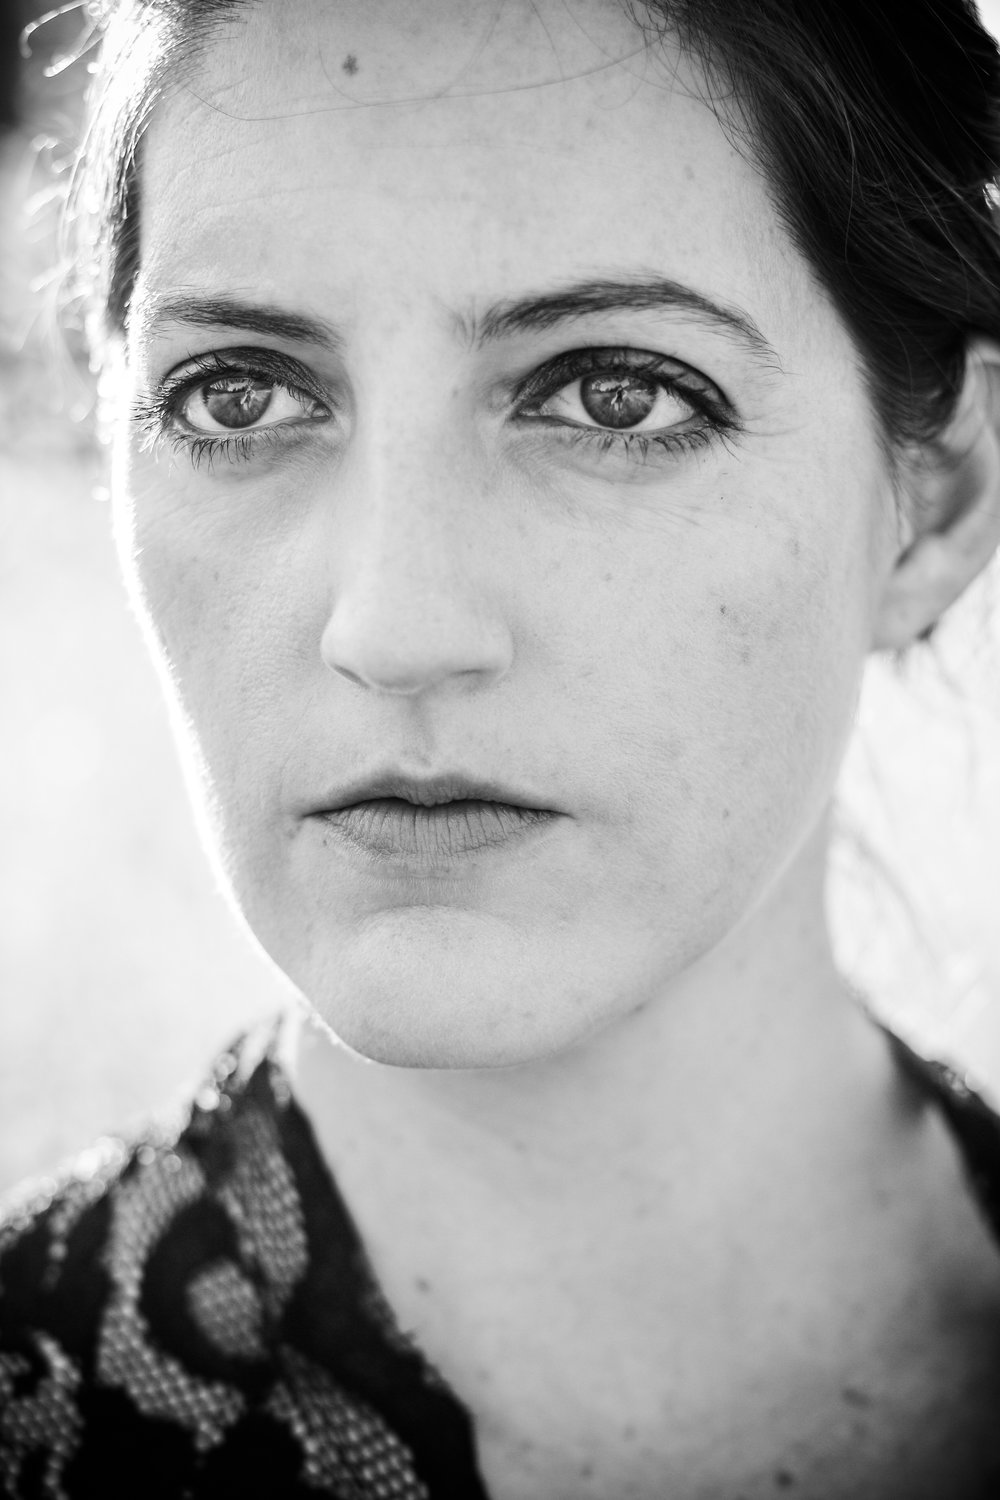 alexandra-rice-photography-quail-hollow-ranch-gothic-photoshoot-meadow-close-up-black-white-portrait.jpg